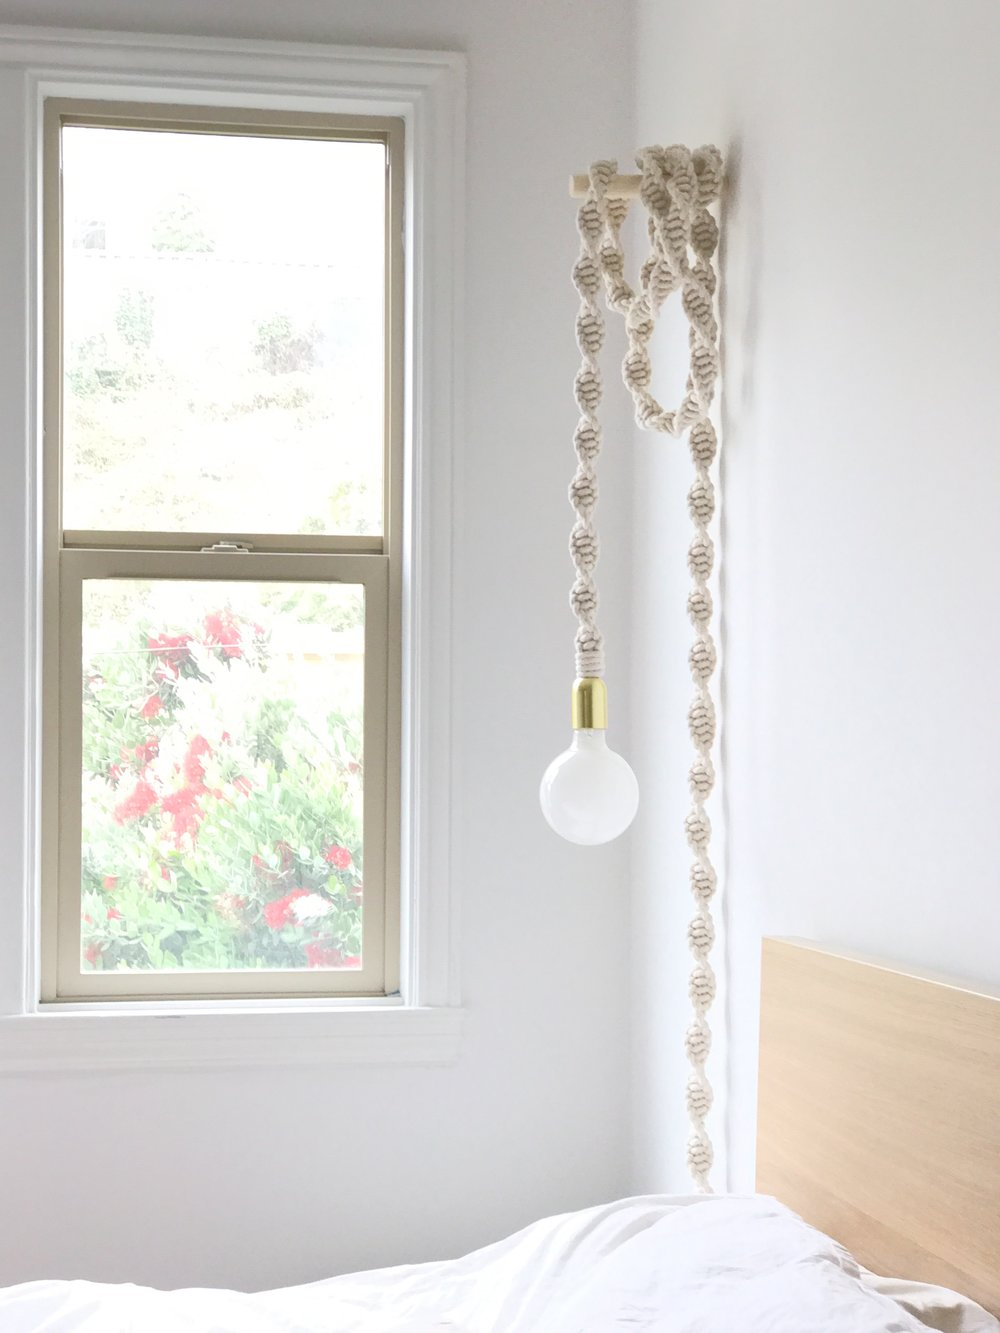 Helix Light by Windy Chien http://windychien.com